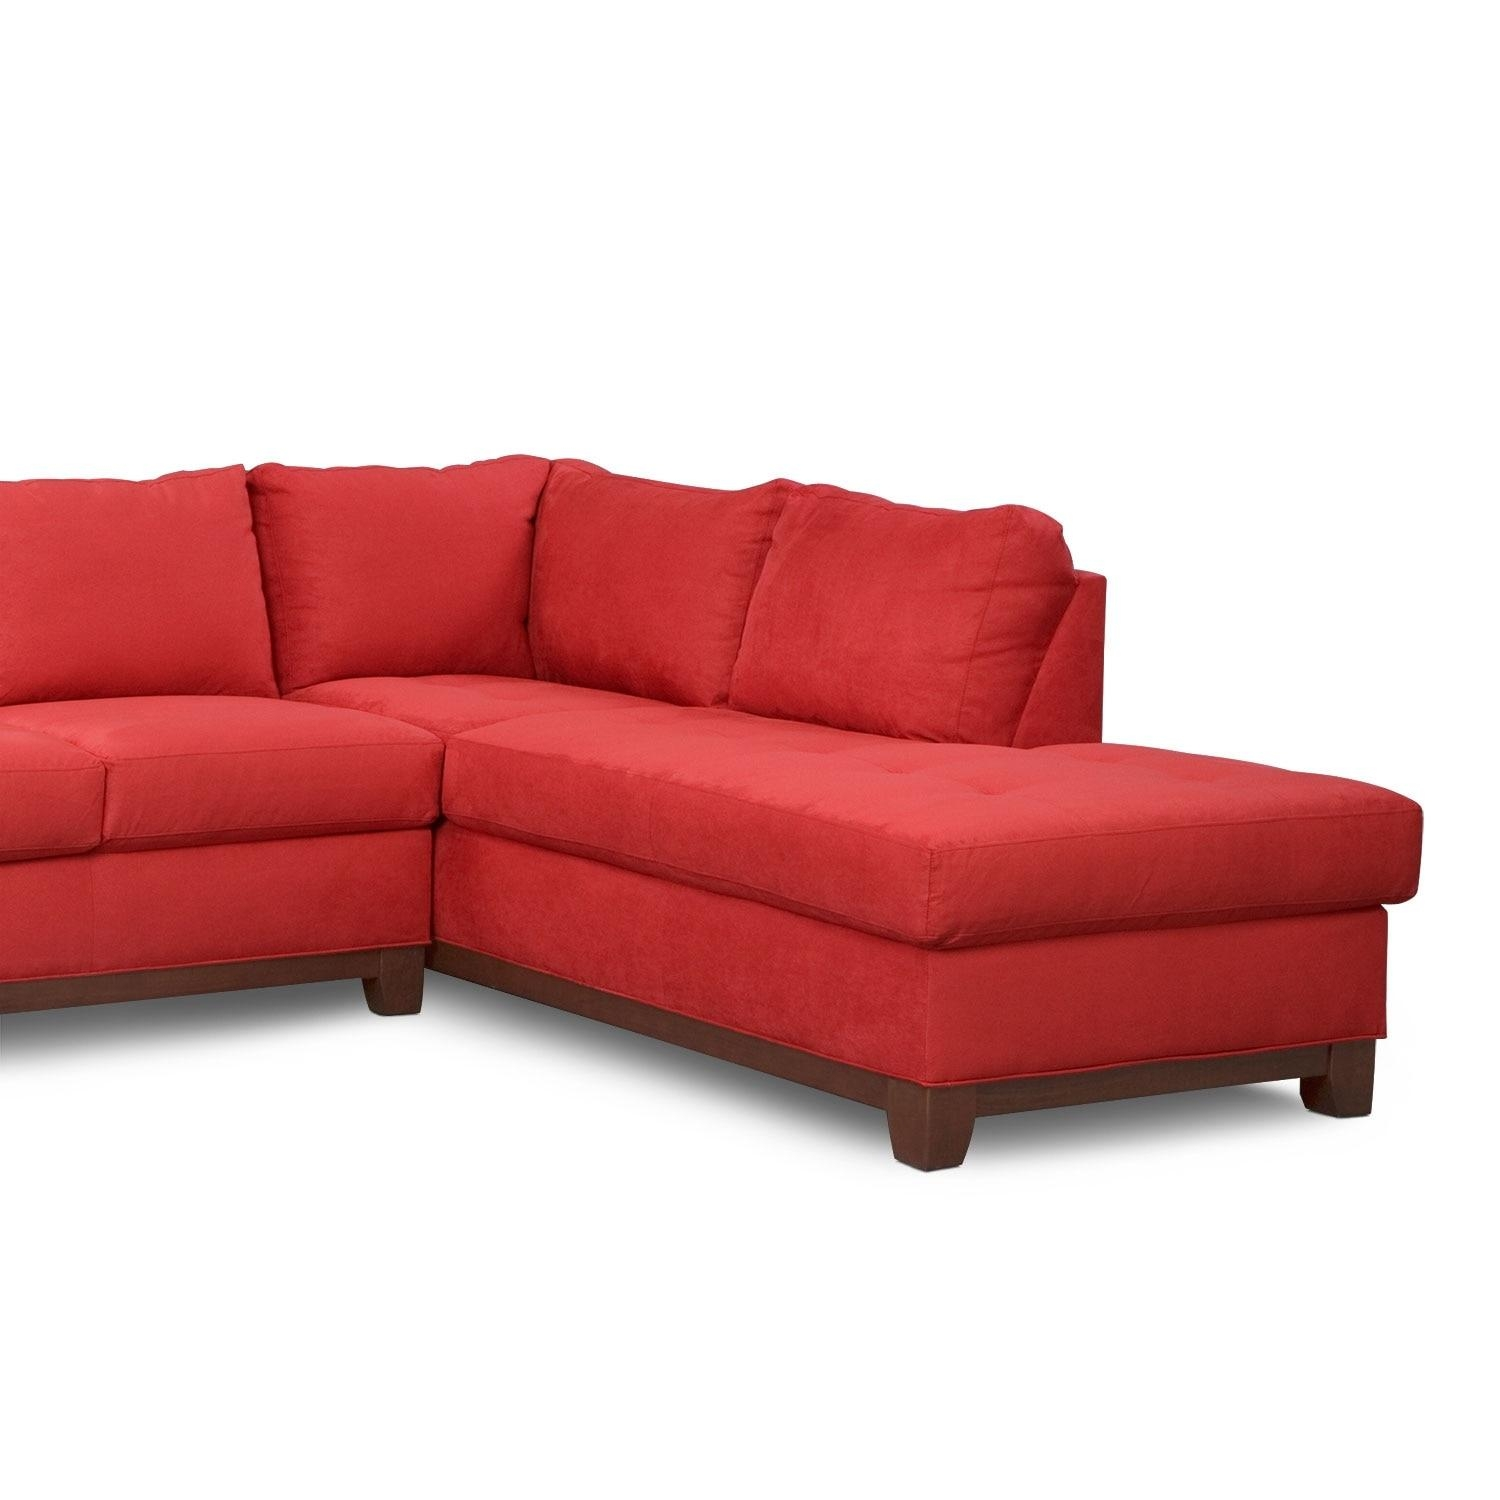 Soho 2 Piece Sectional With Right Facing Chaise – Red | American For Sectional With 2 Chaises (Image 19 of 20)